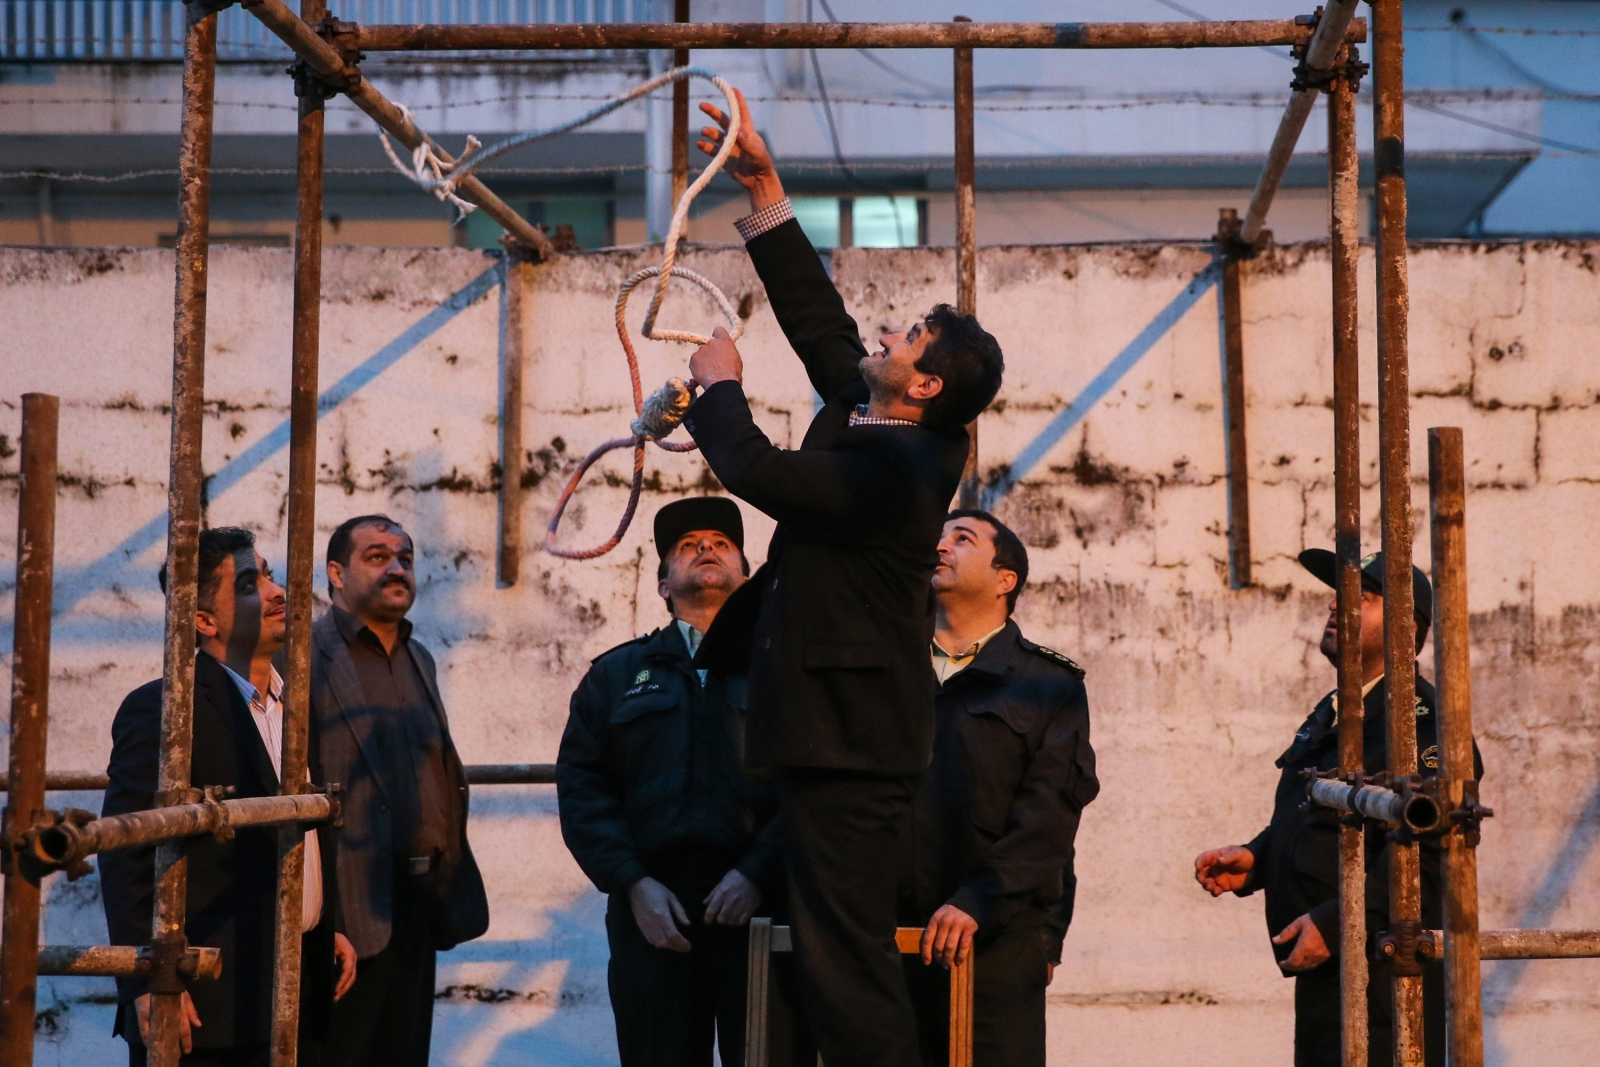 Iran Eases Death Penalty for Drug Crimes, Saving Potentially Thousands of Lives